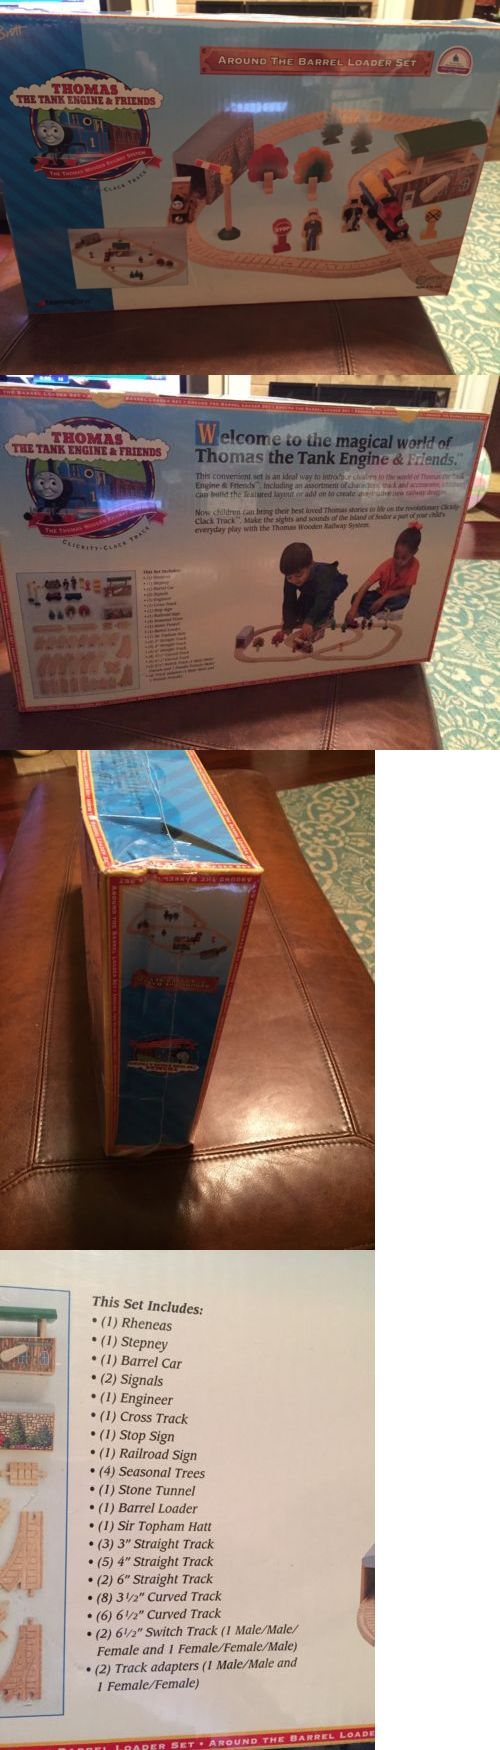 Other Thomas Toys 2629: Thomas And Friends Clickity Clack Track Around The Barrel Loader Set Brown Label -> BUY IT NOW ONLY: $300 on eBay!